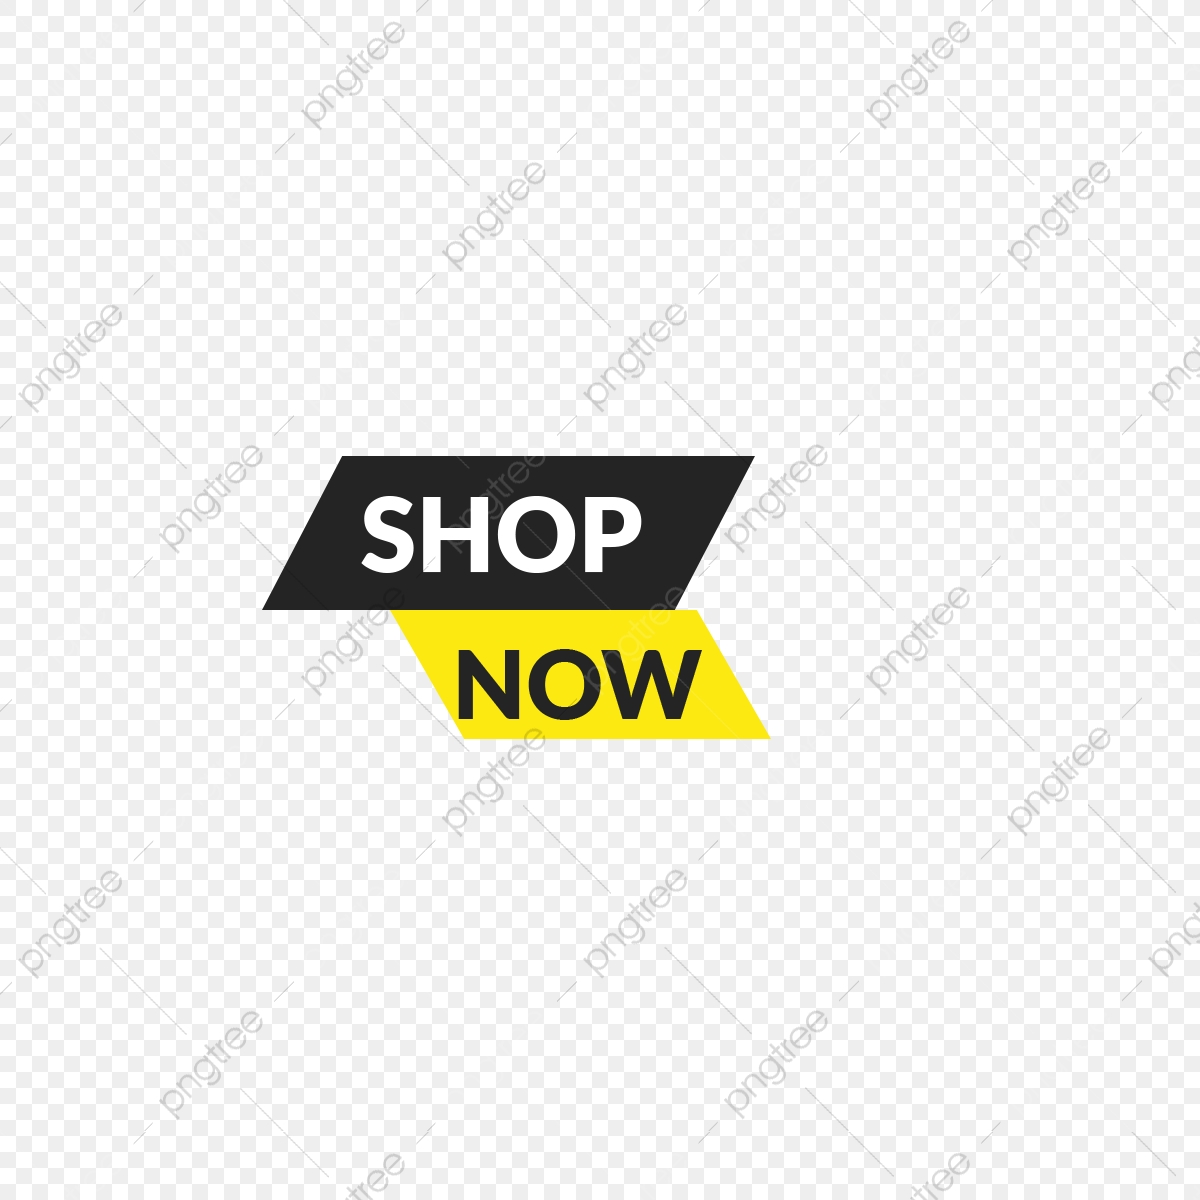 Shop Now Buy Button Now Icon Png Buy Now Icon Png Transparent Clipart Image And Psd File For Free Download